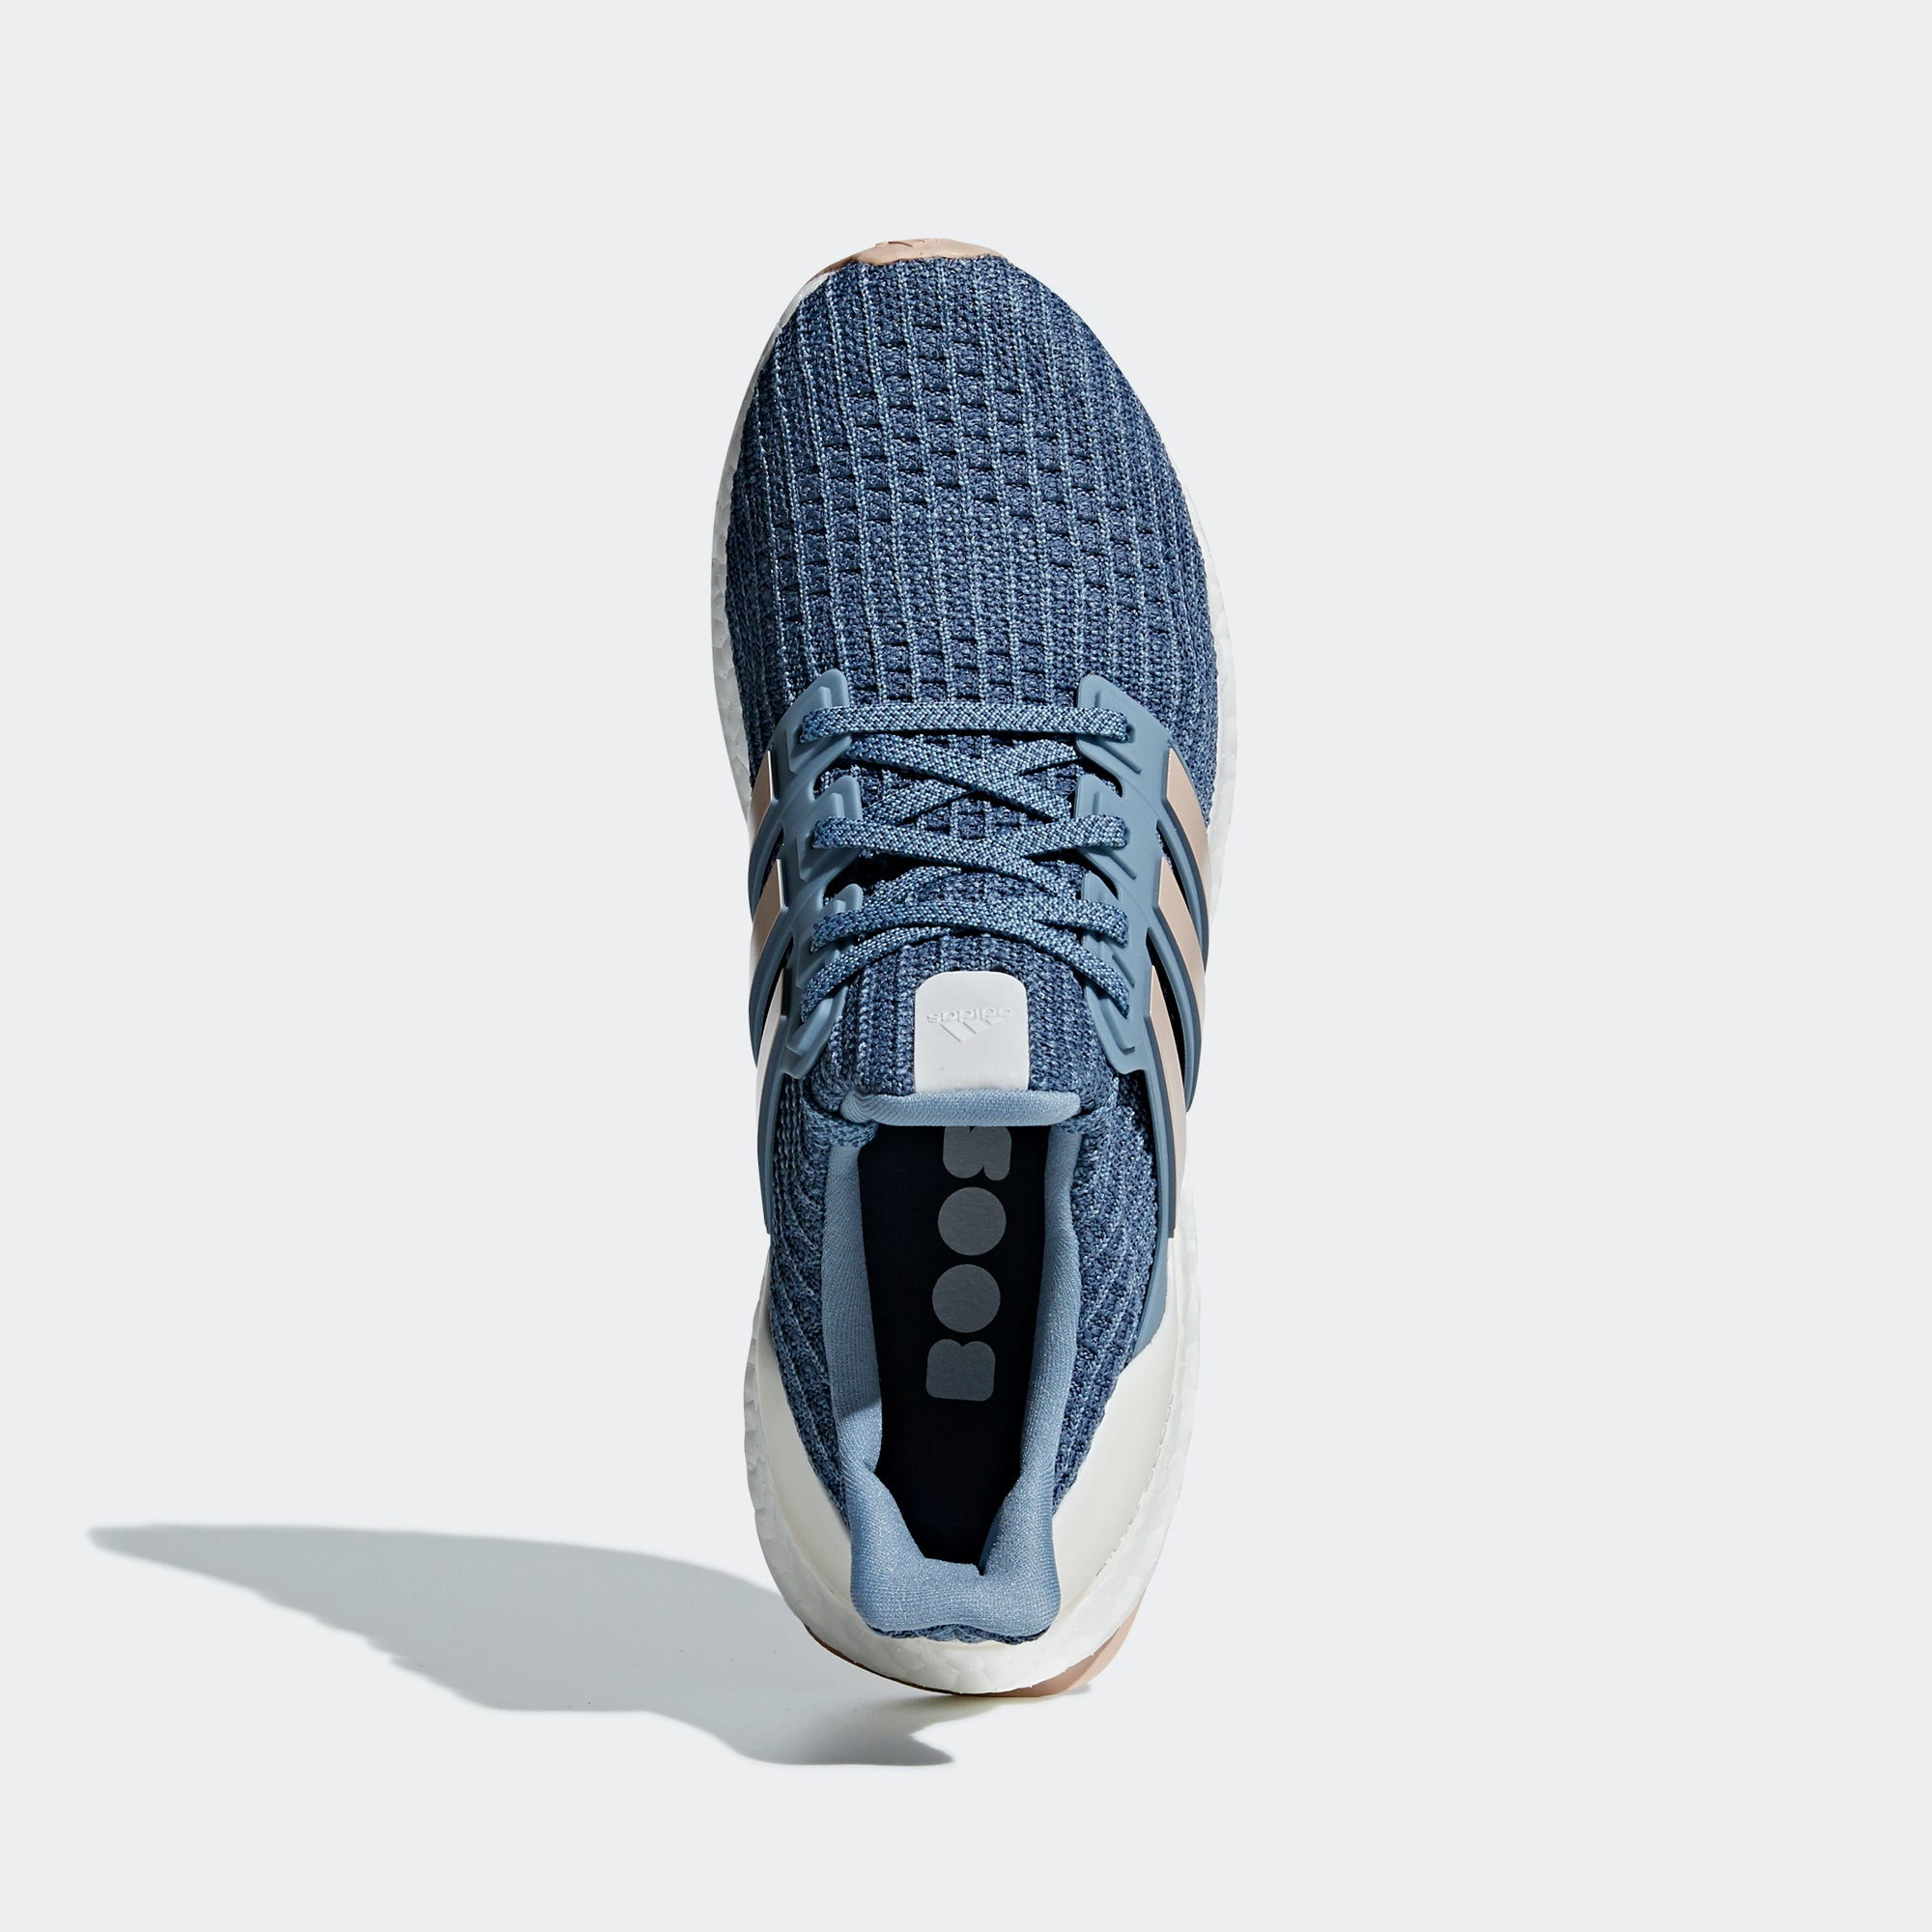 84fdf3766aa2e Women s Adidas Running Ultraboost Shoes Raw Grey Blue BB6493 ...